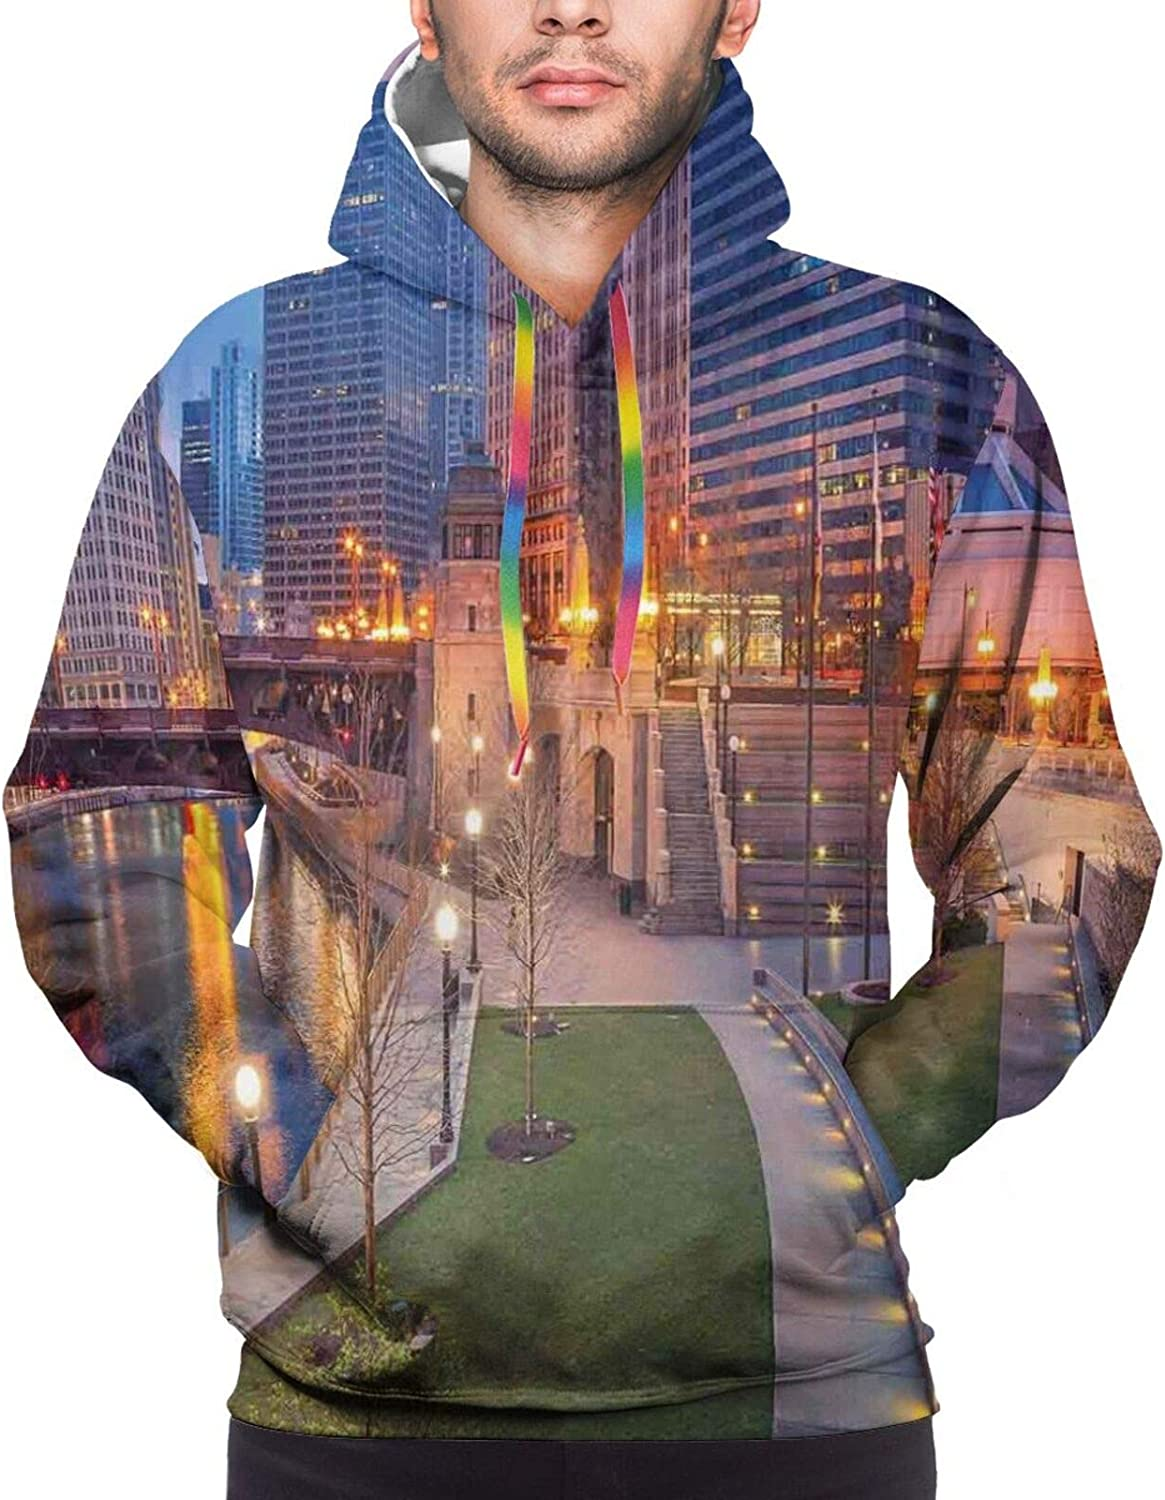 Men's Hoodies Sweatshirts,Cityscape of Lisbon Portugal Traditional Seaside City Colorful Sky Sunset Evening View